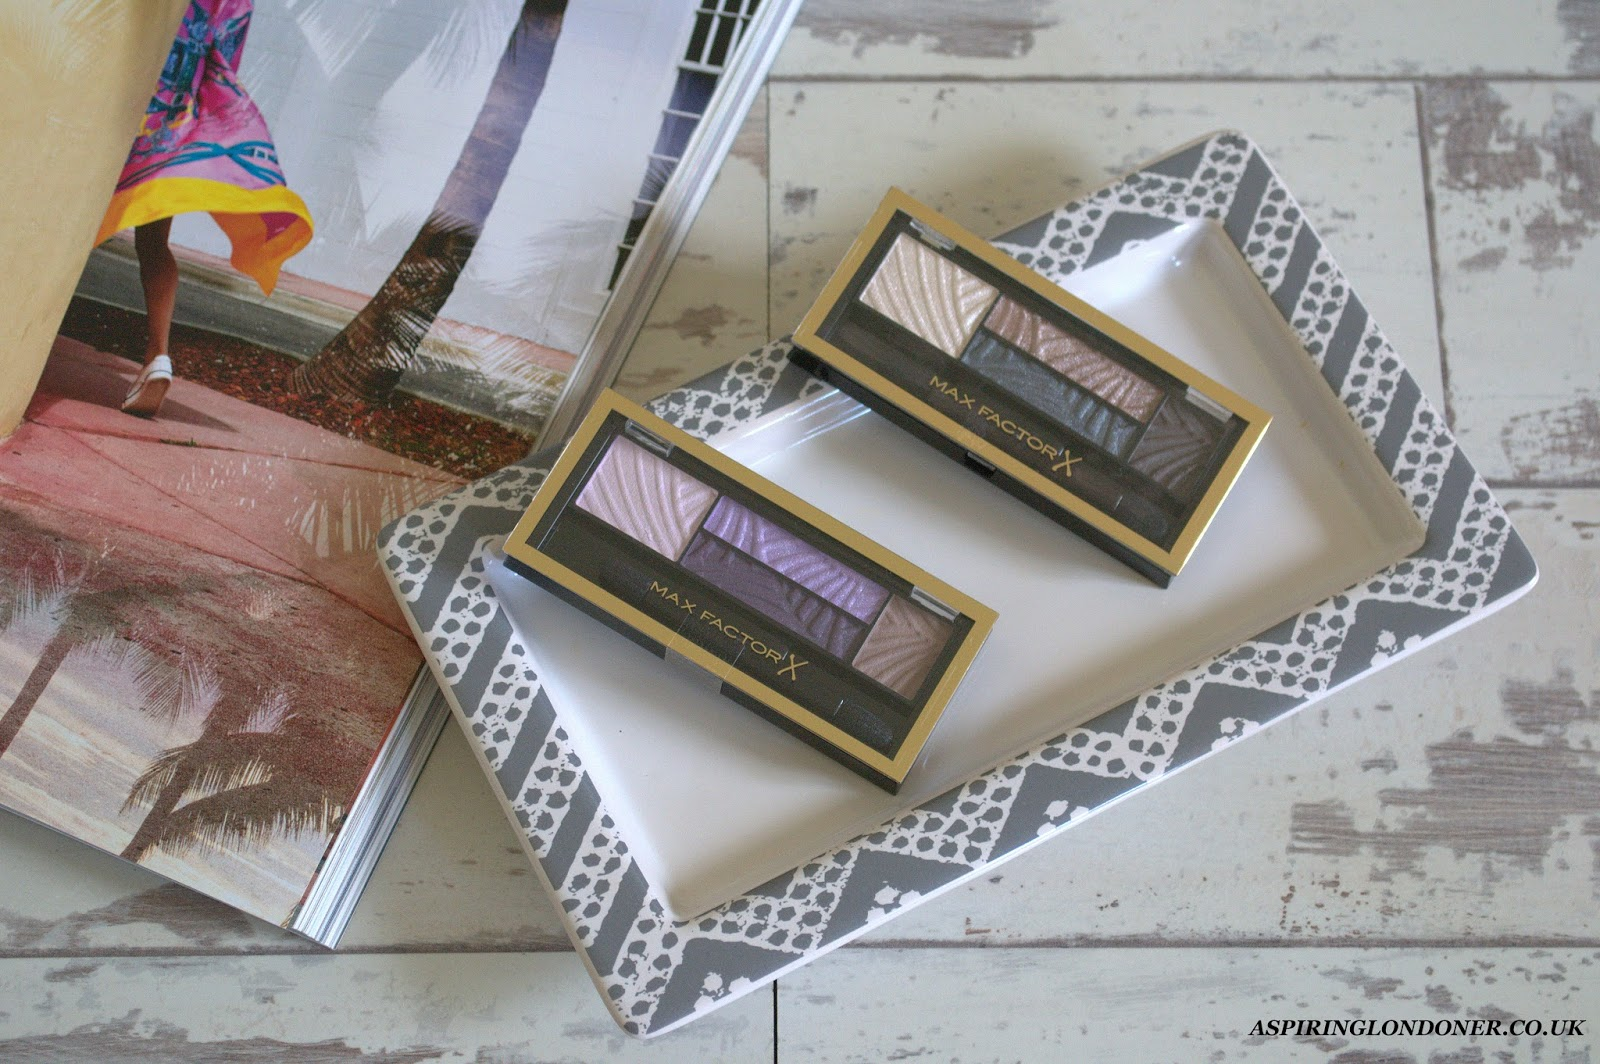 Max Factor Smokey Eye Drama Kits Review - Aspiring Londoner